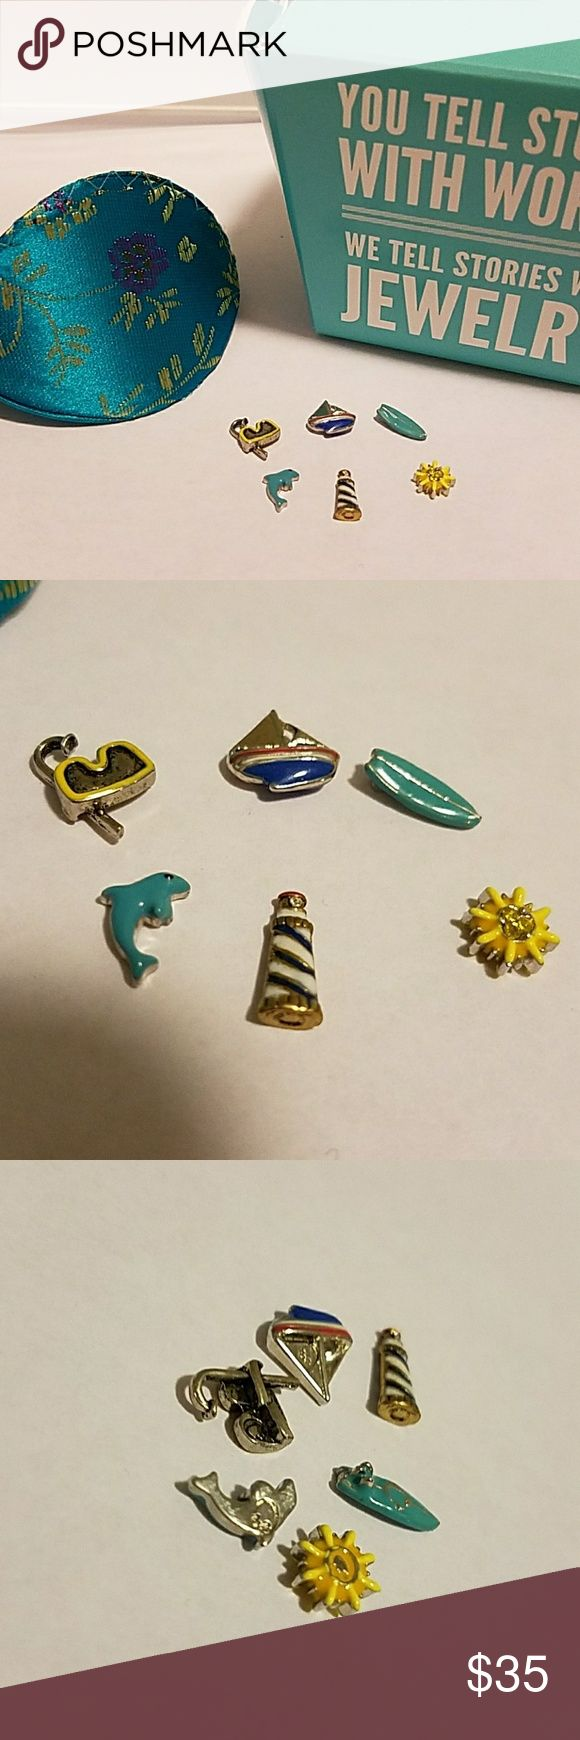 Authentic Origami Owl Charms Adorable Authentic (6) Origami Owl Charms. Like New Condition! Nautical Theme. Comes With Fortune Cookie Pouch & Box. Origami Owl Jewelry